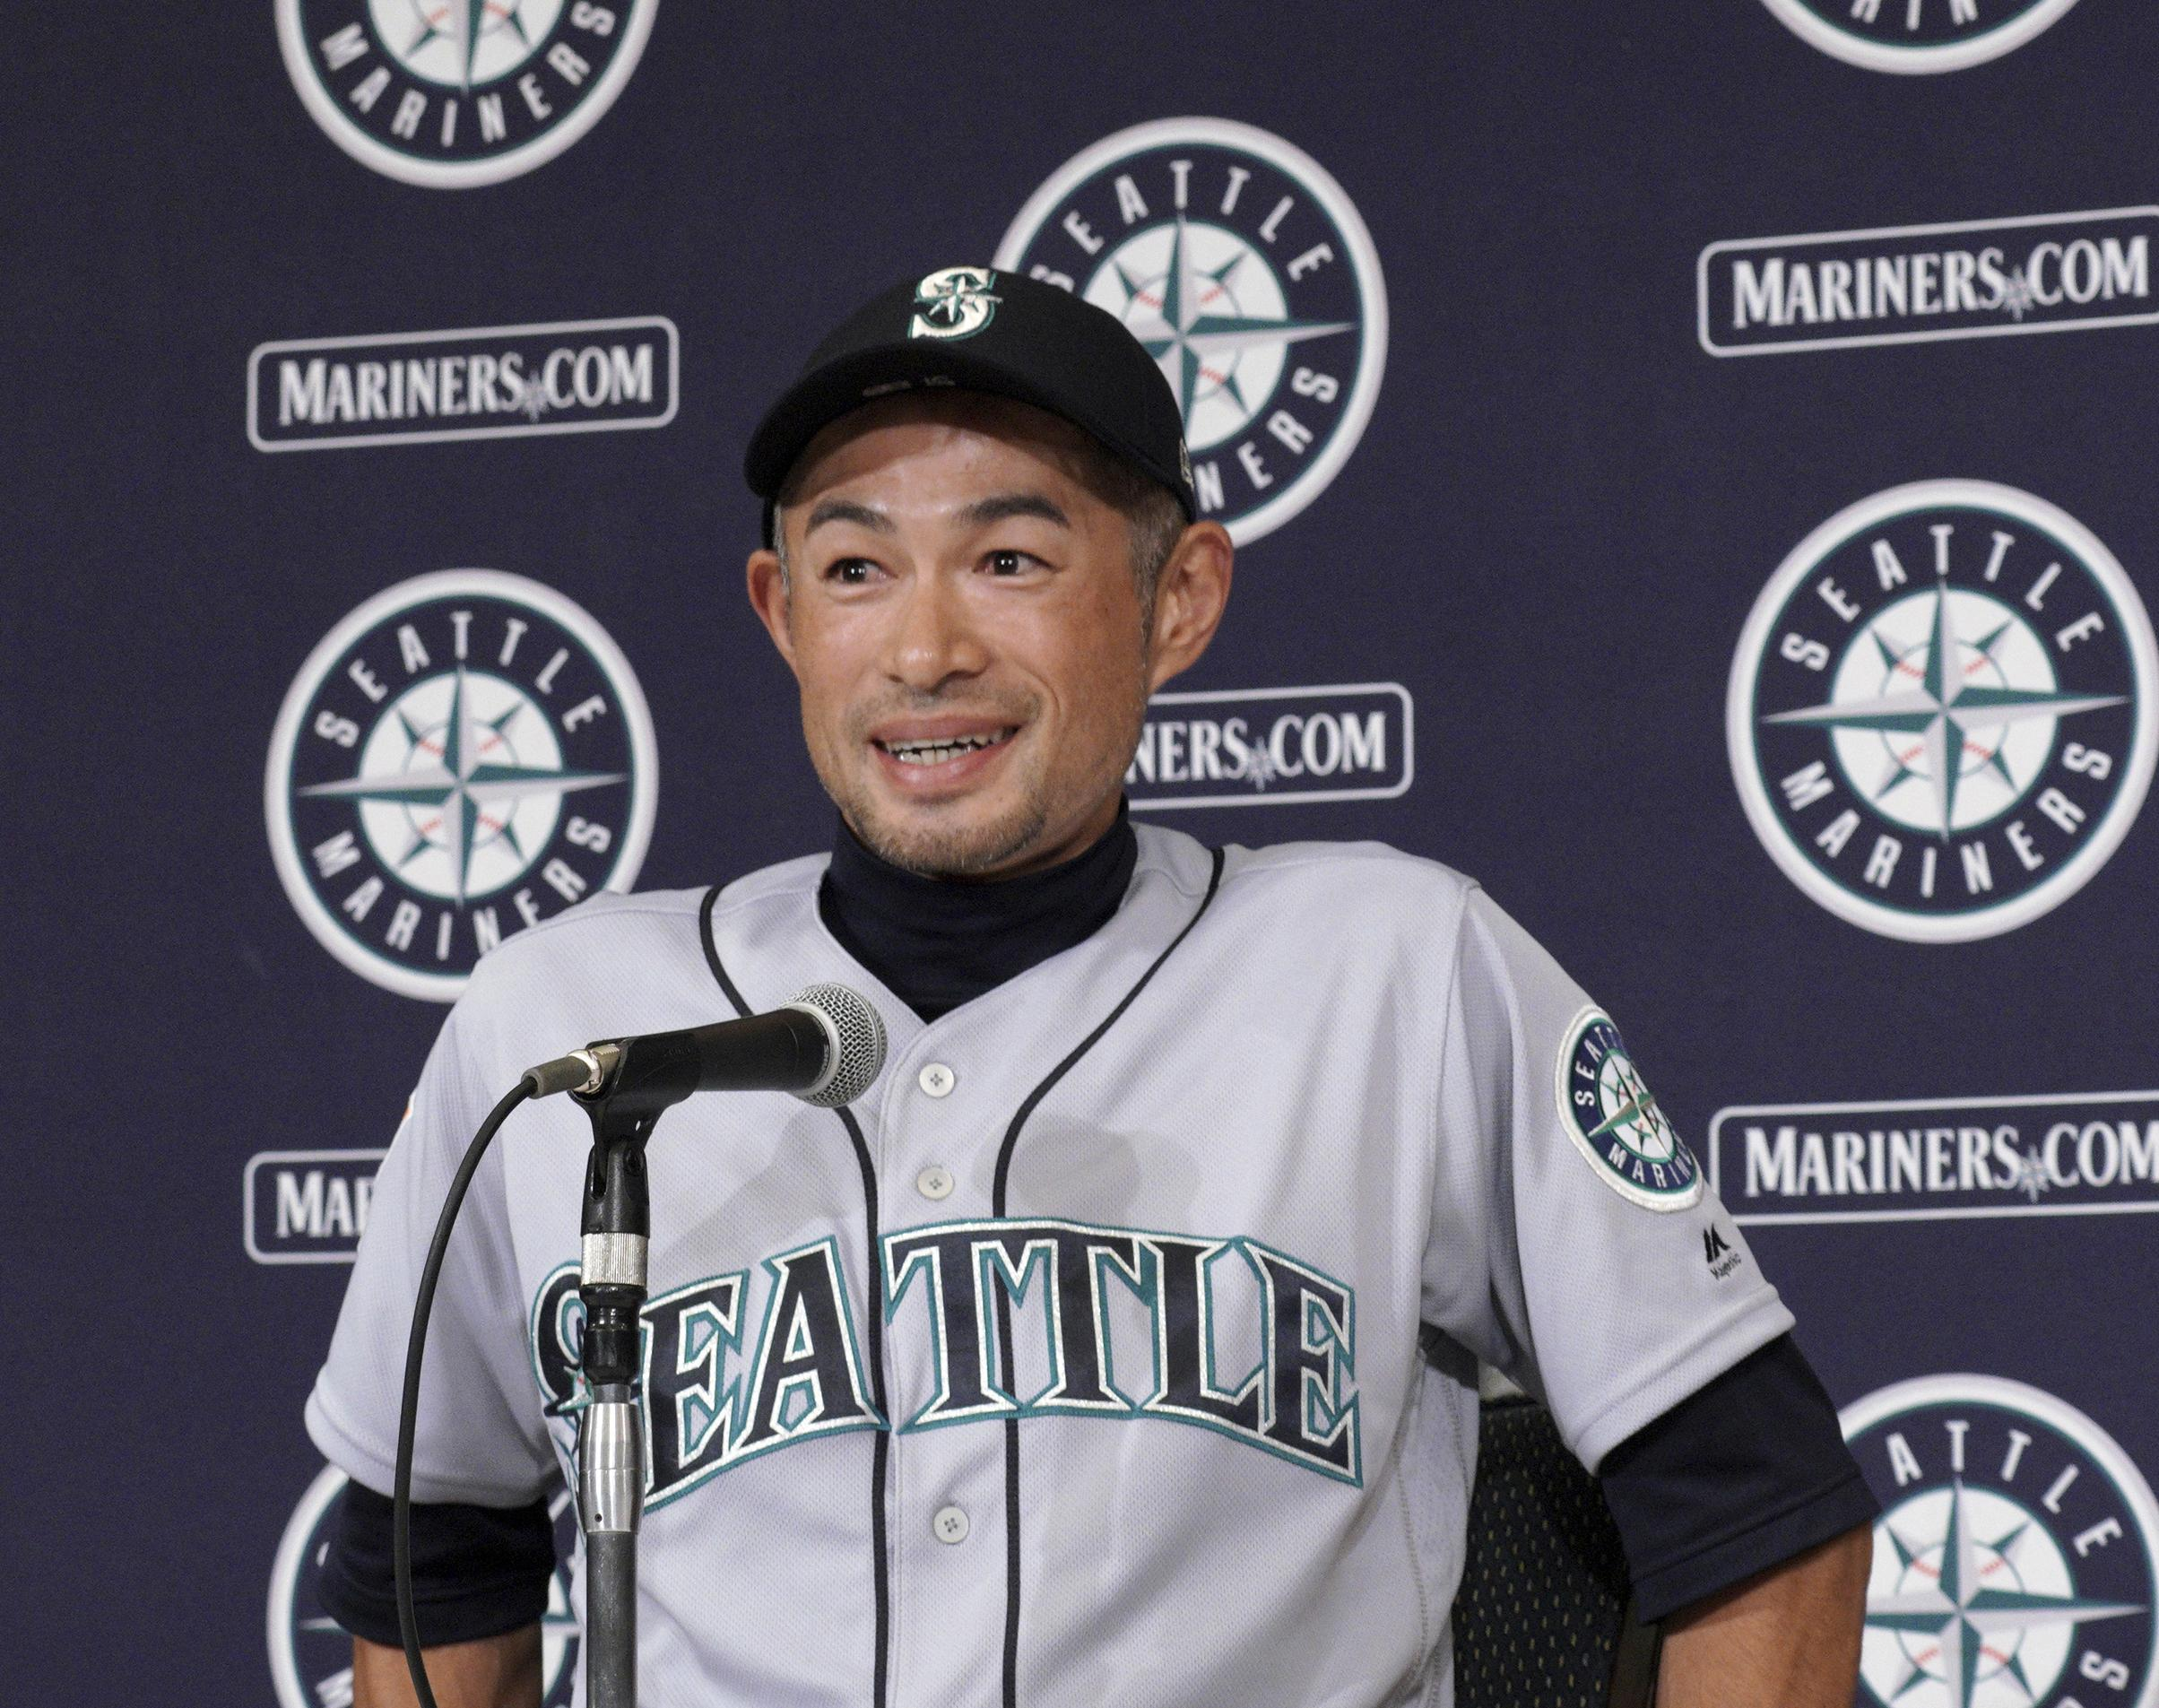 designer fashion 8d118 a711f Ichiro Suzuki back with Mariners as special assistant | The ...